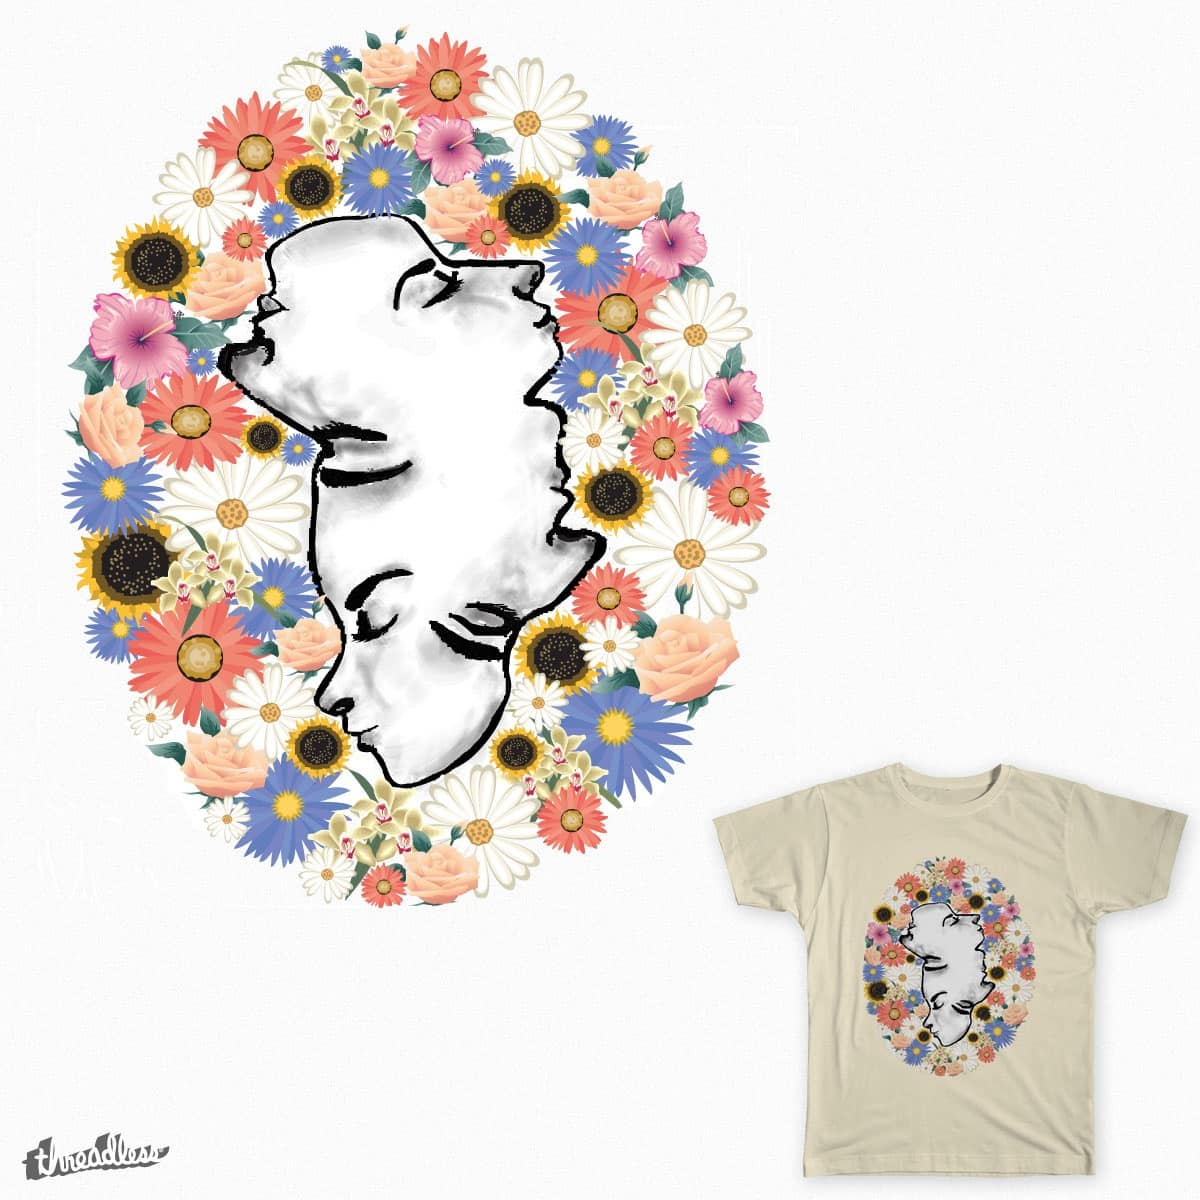 Face Off by adrianaxm on Threadless